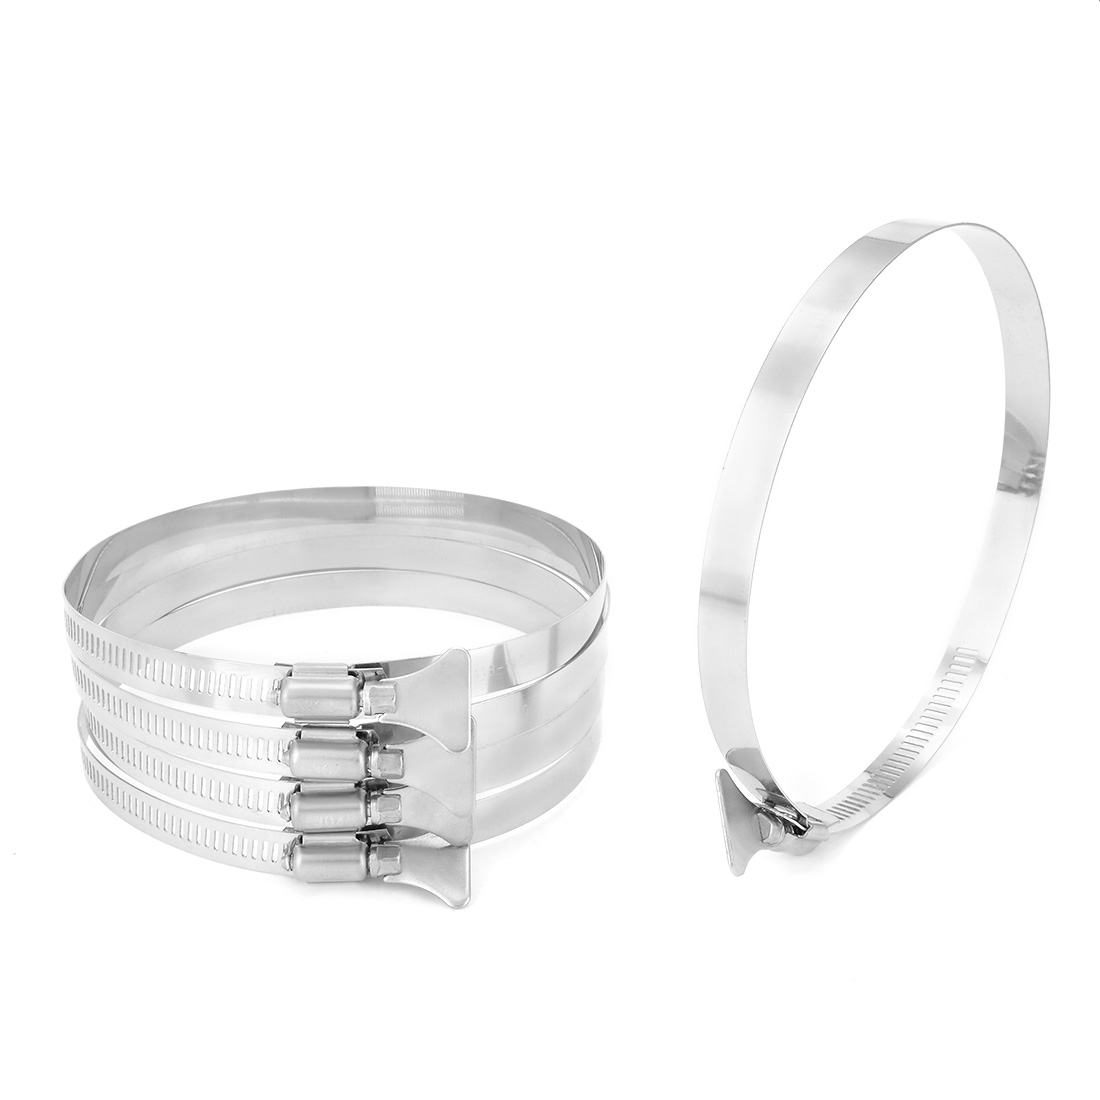 118mm-140mm Clamping Range 304 Stainless Steel Butterfly Hose Clamp 5pcs